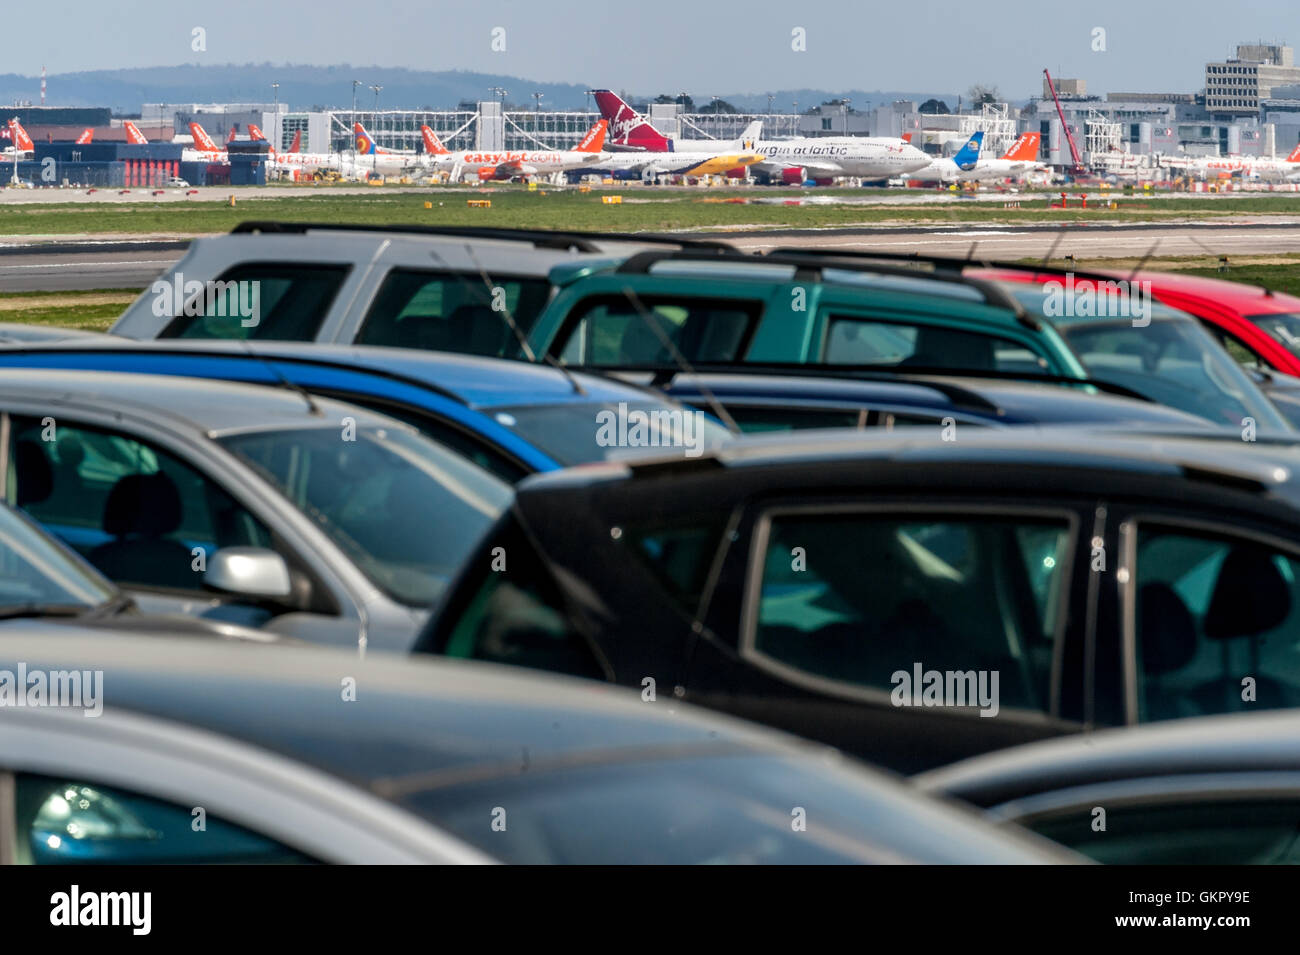 Airport Parking Near Gatwick Airport In Sussex Stock Photo